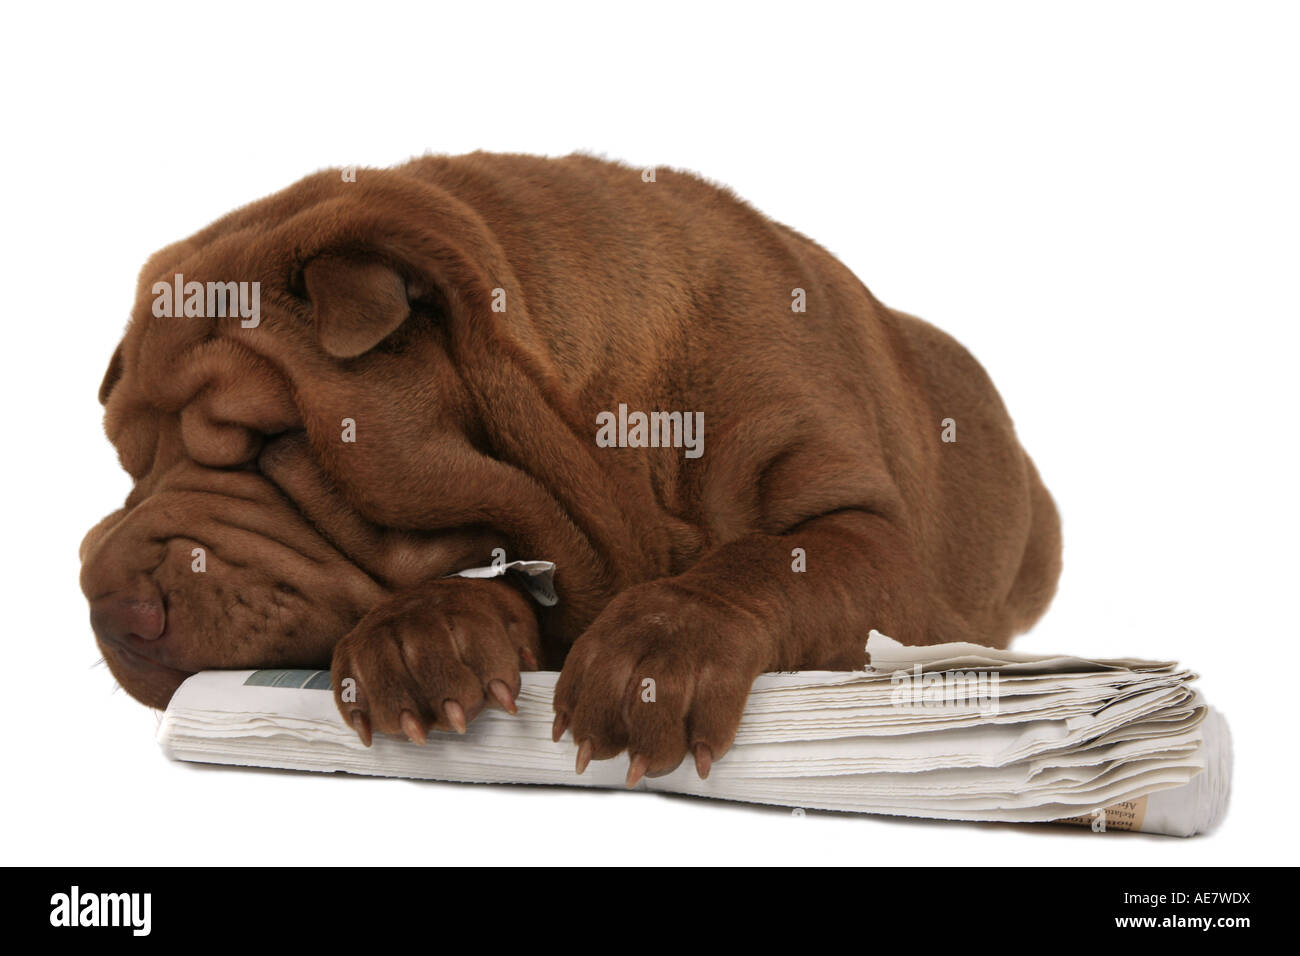 Shar Pei, Chinese Shar-Pei (Canis lupus f. familiaris), chewing a newspaper Stock Photo